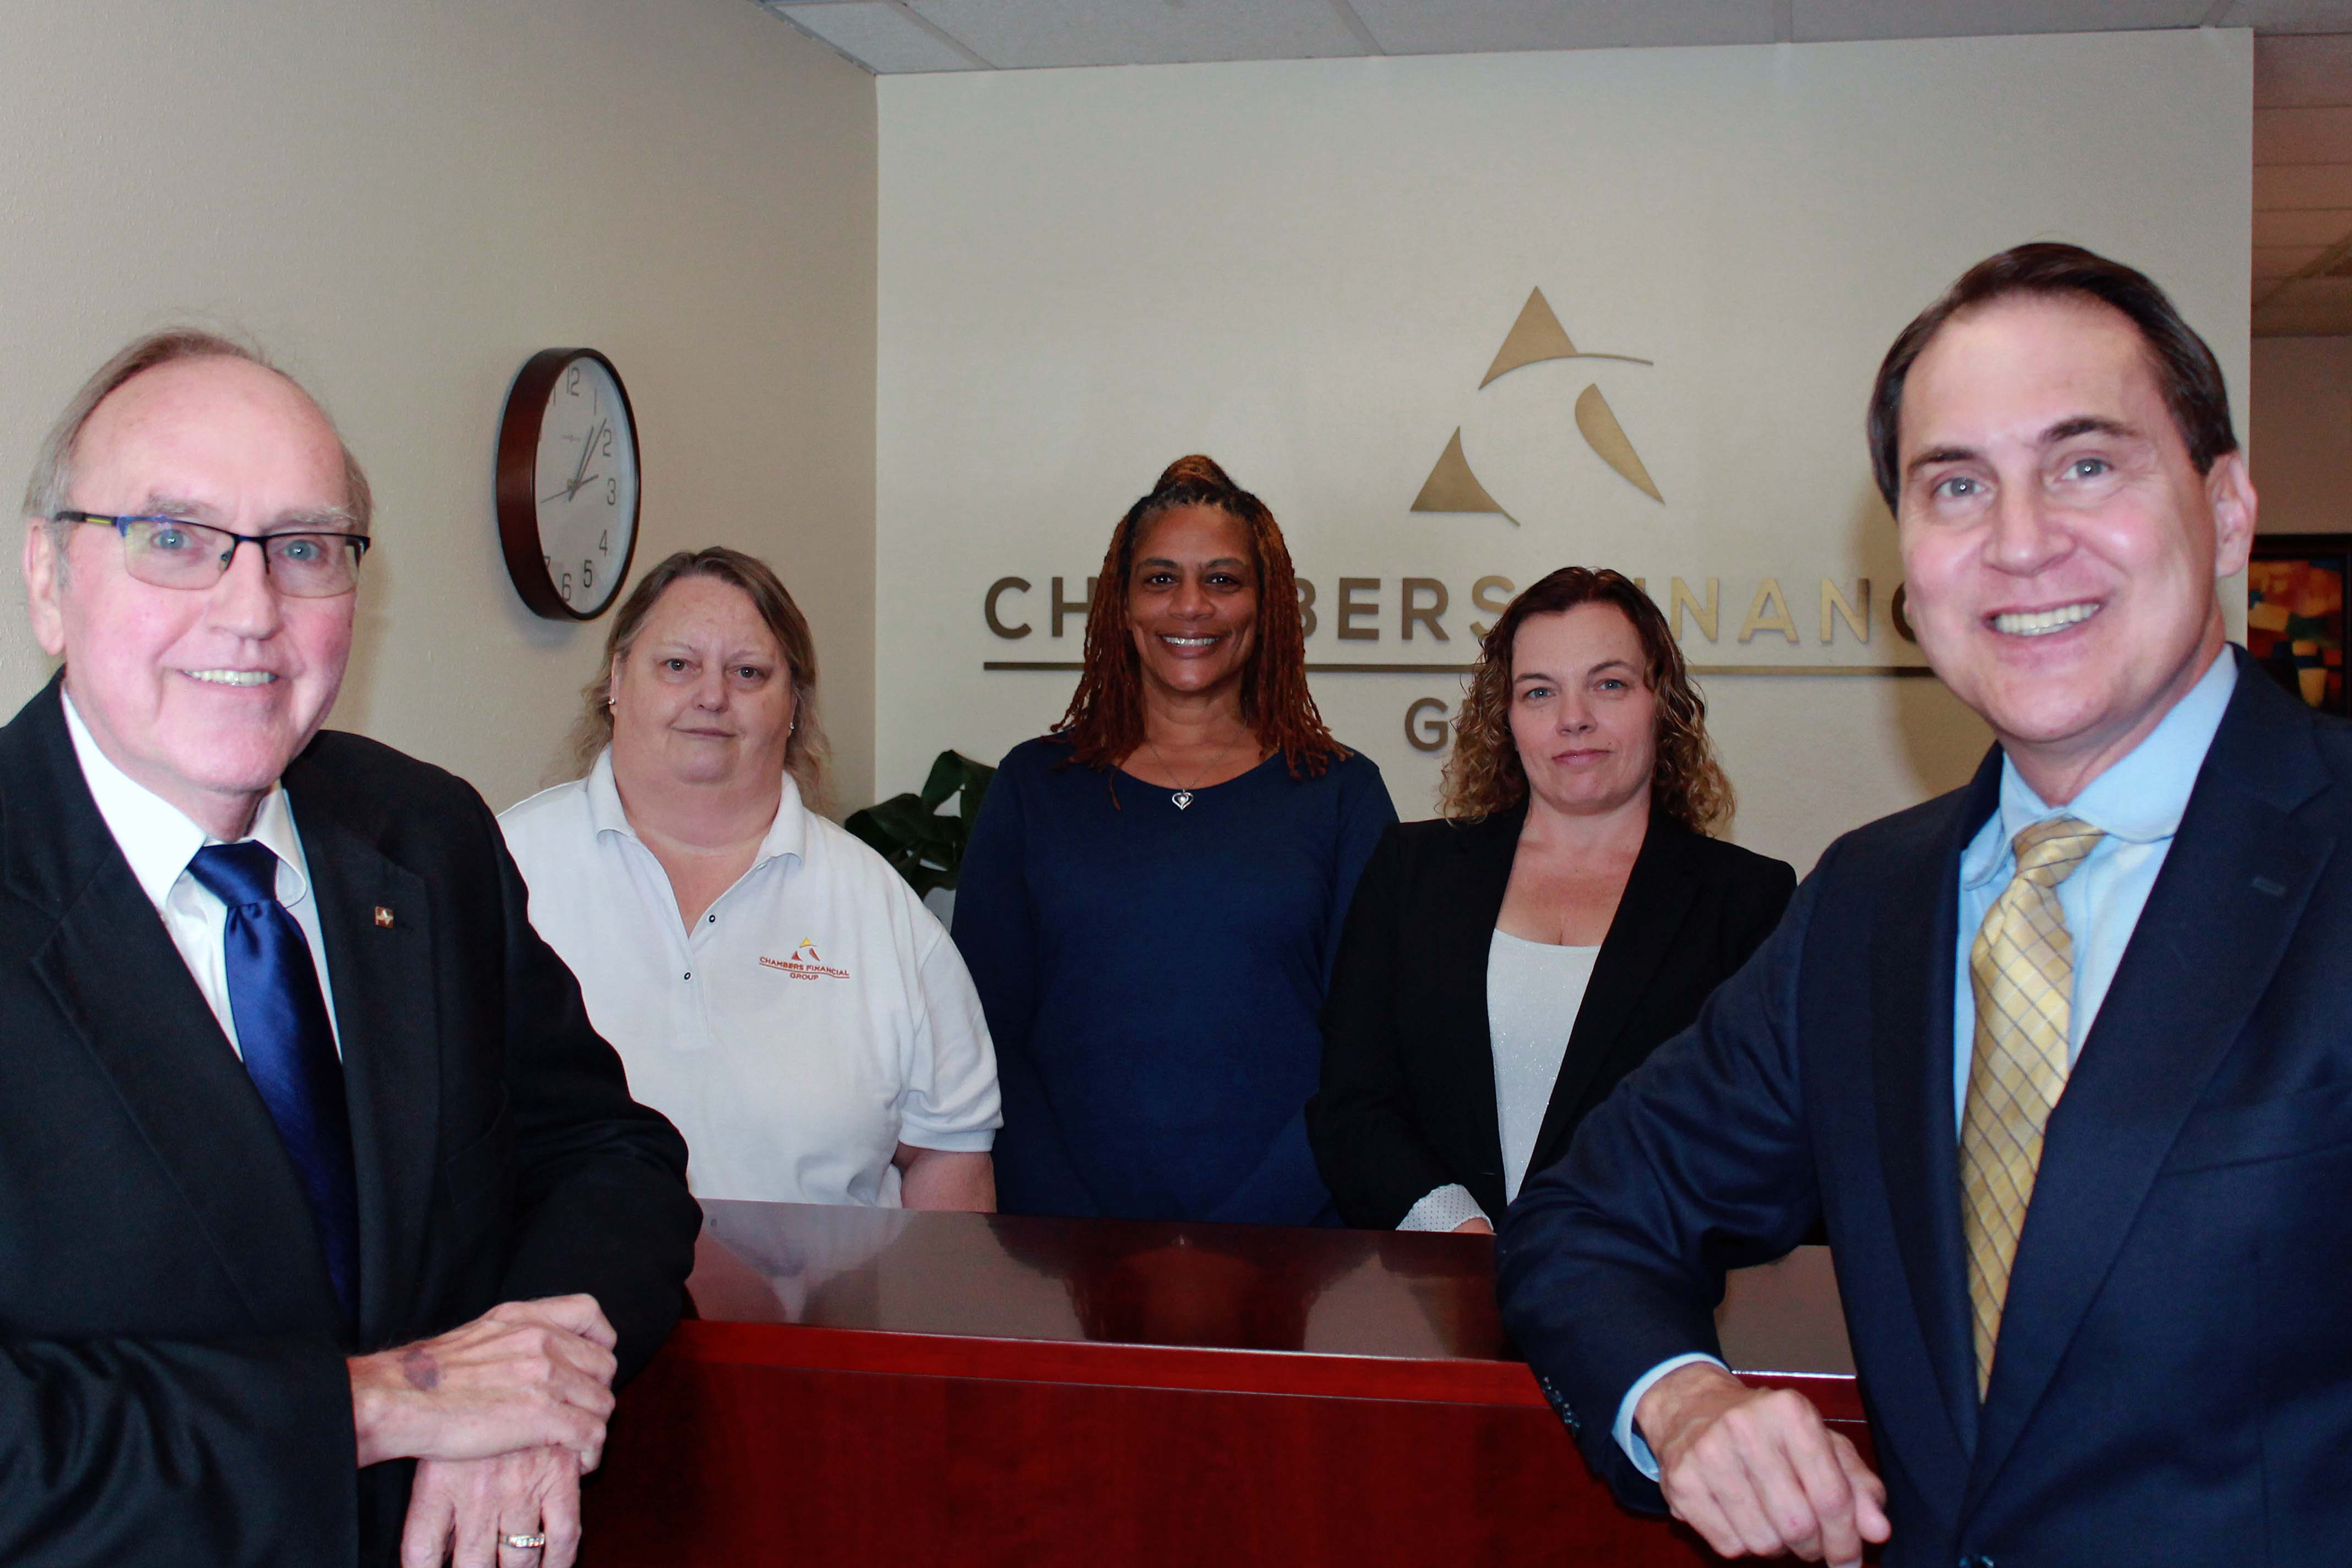 Chambers Financial Group Team in Largo office.